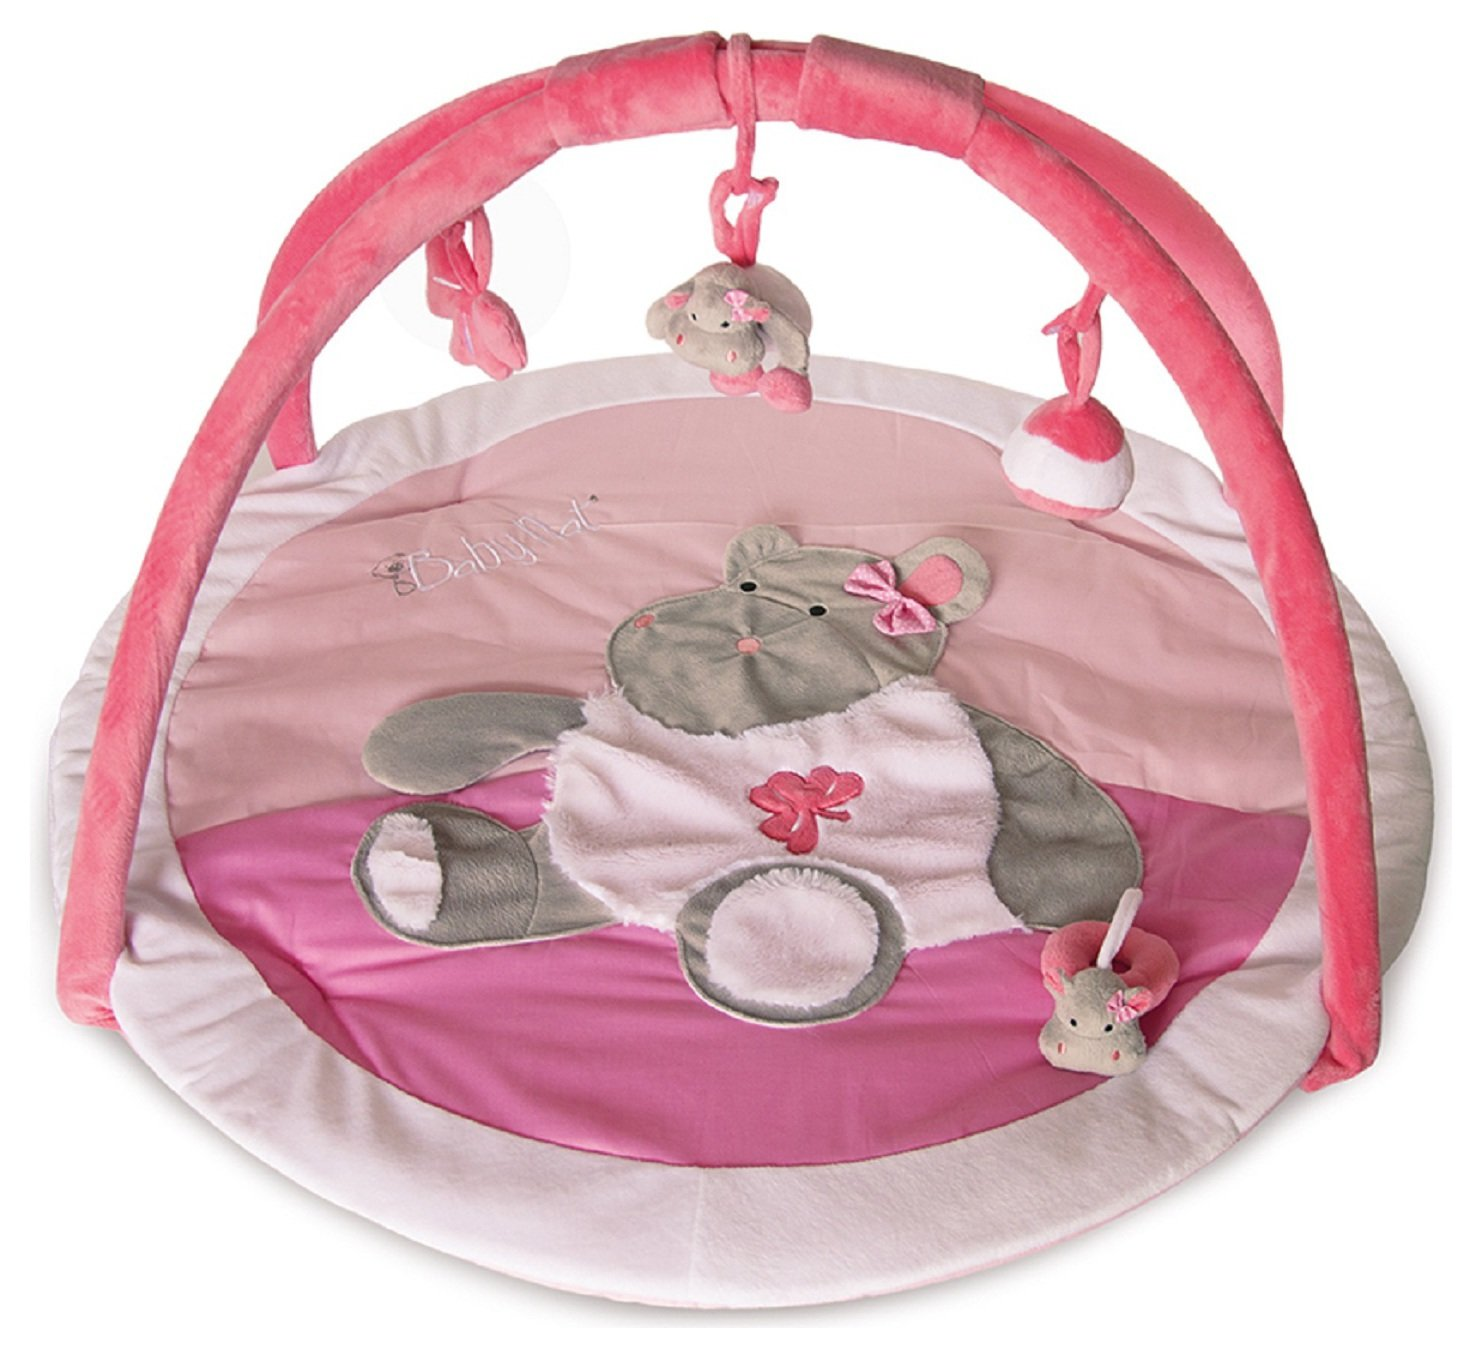 Image of Bebe Hippo Playmat - Pink